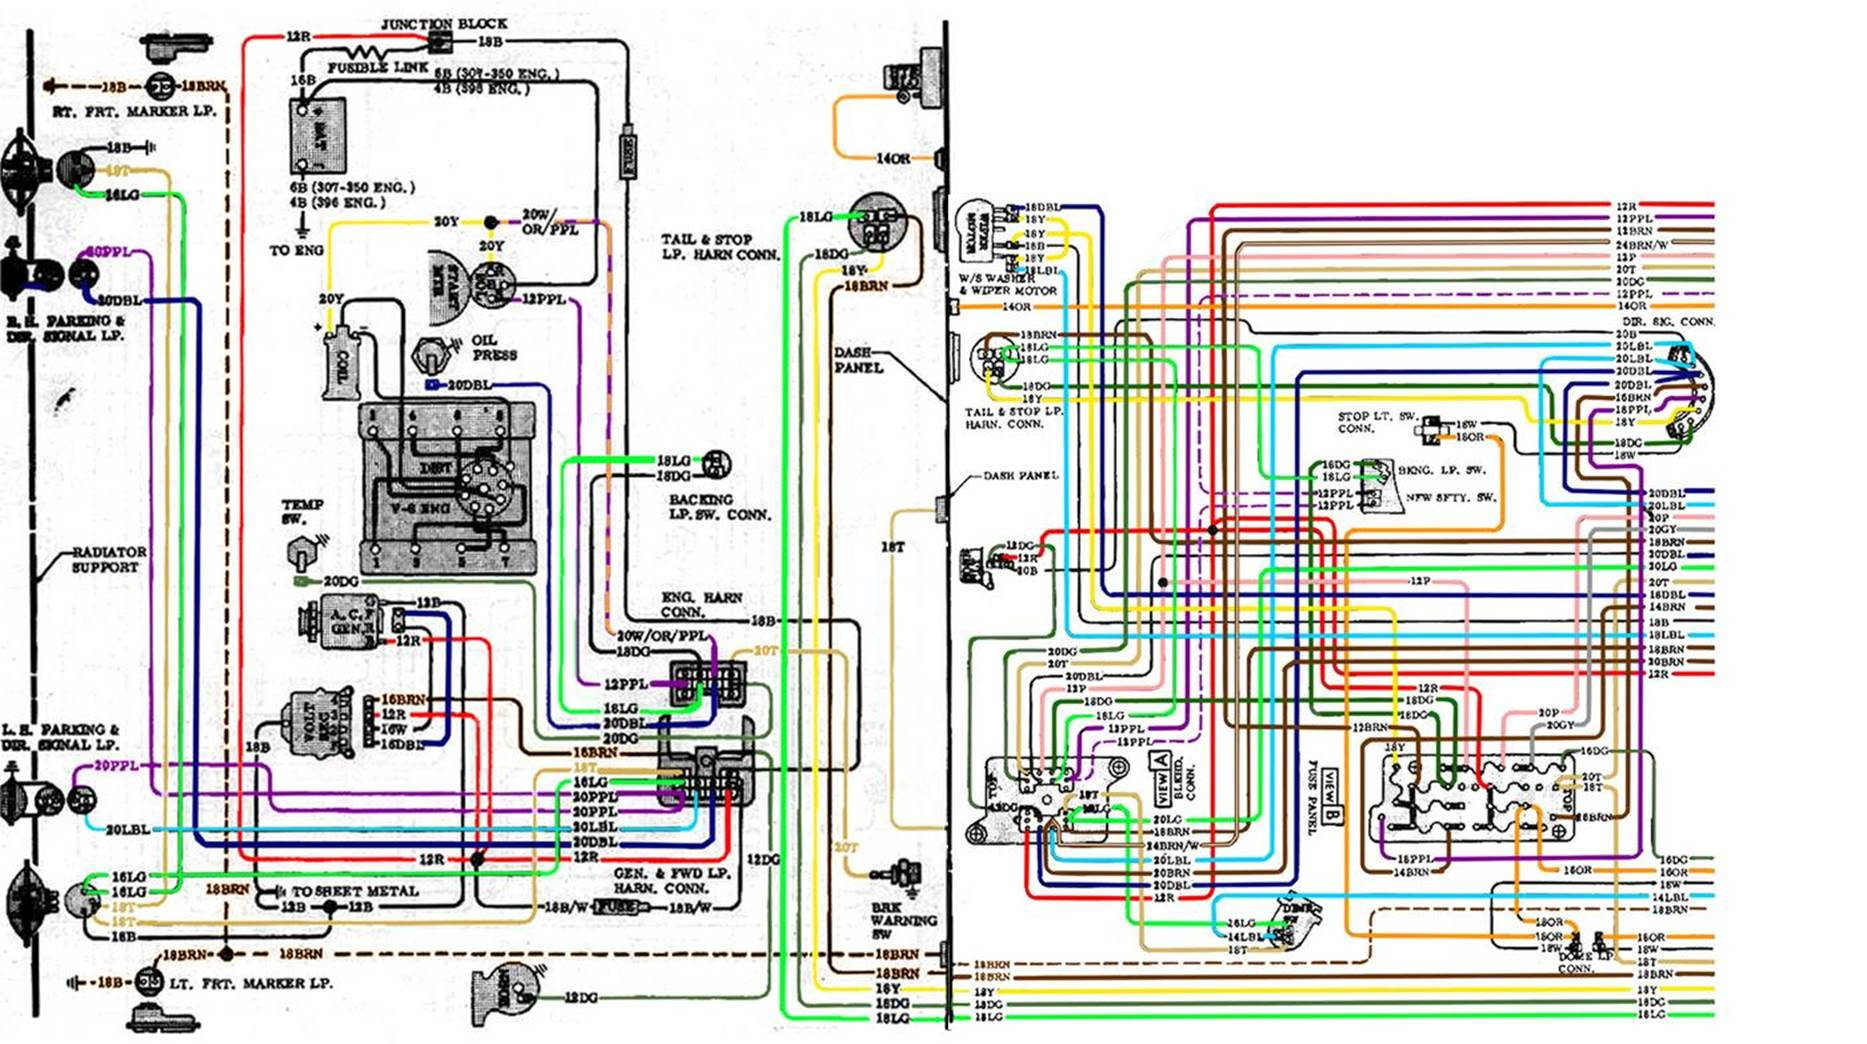 69 nova starter wiring harness wiring diagram database 1971 Nova Wiring Schematic 70 chevelle starter wiring harness diagram wiring diagram chopper wiring harness diagram 69 nova starter wiring harness